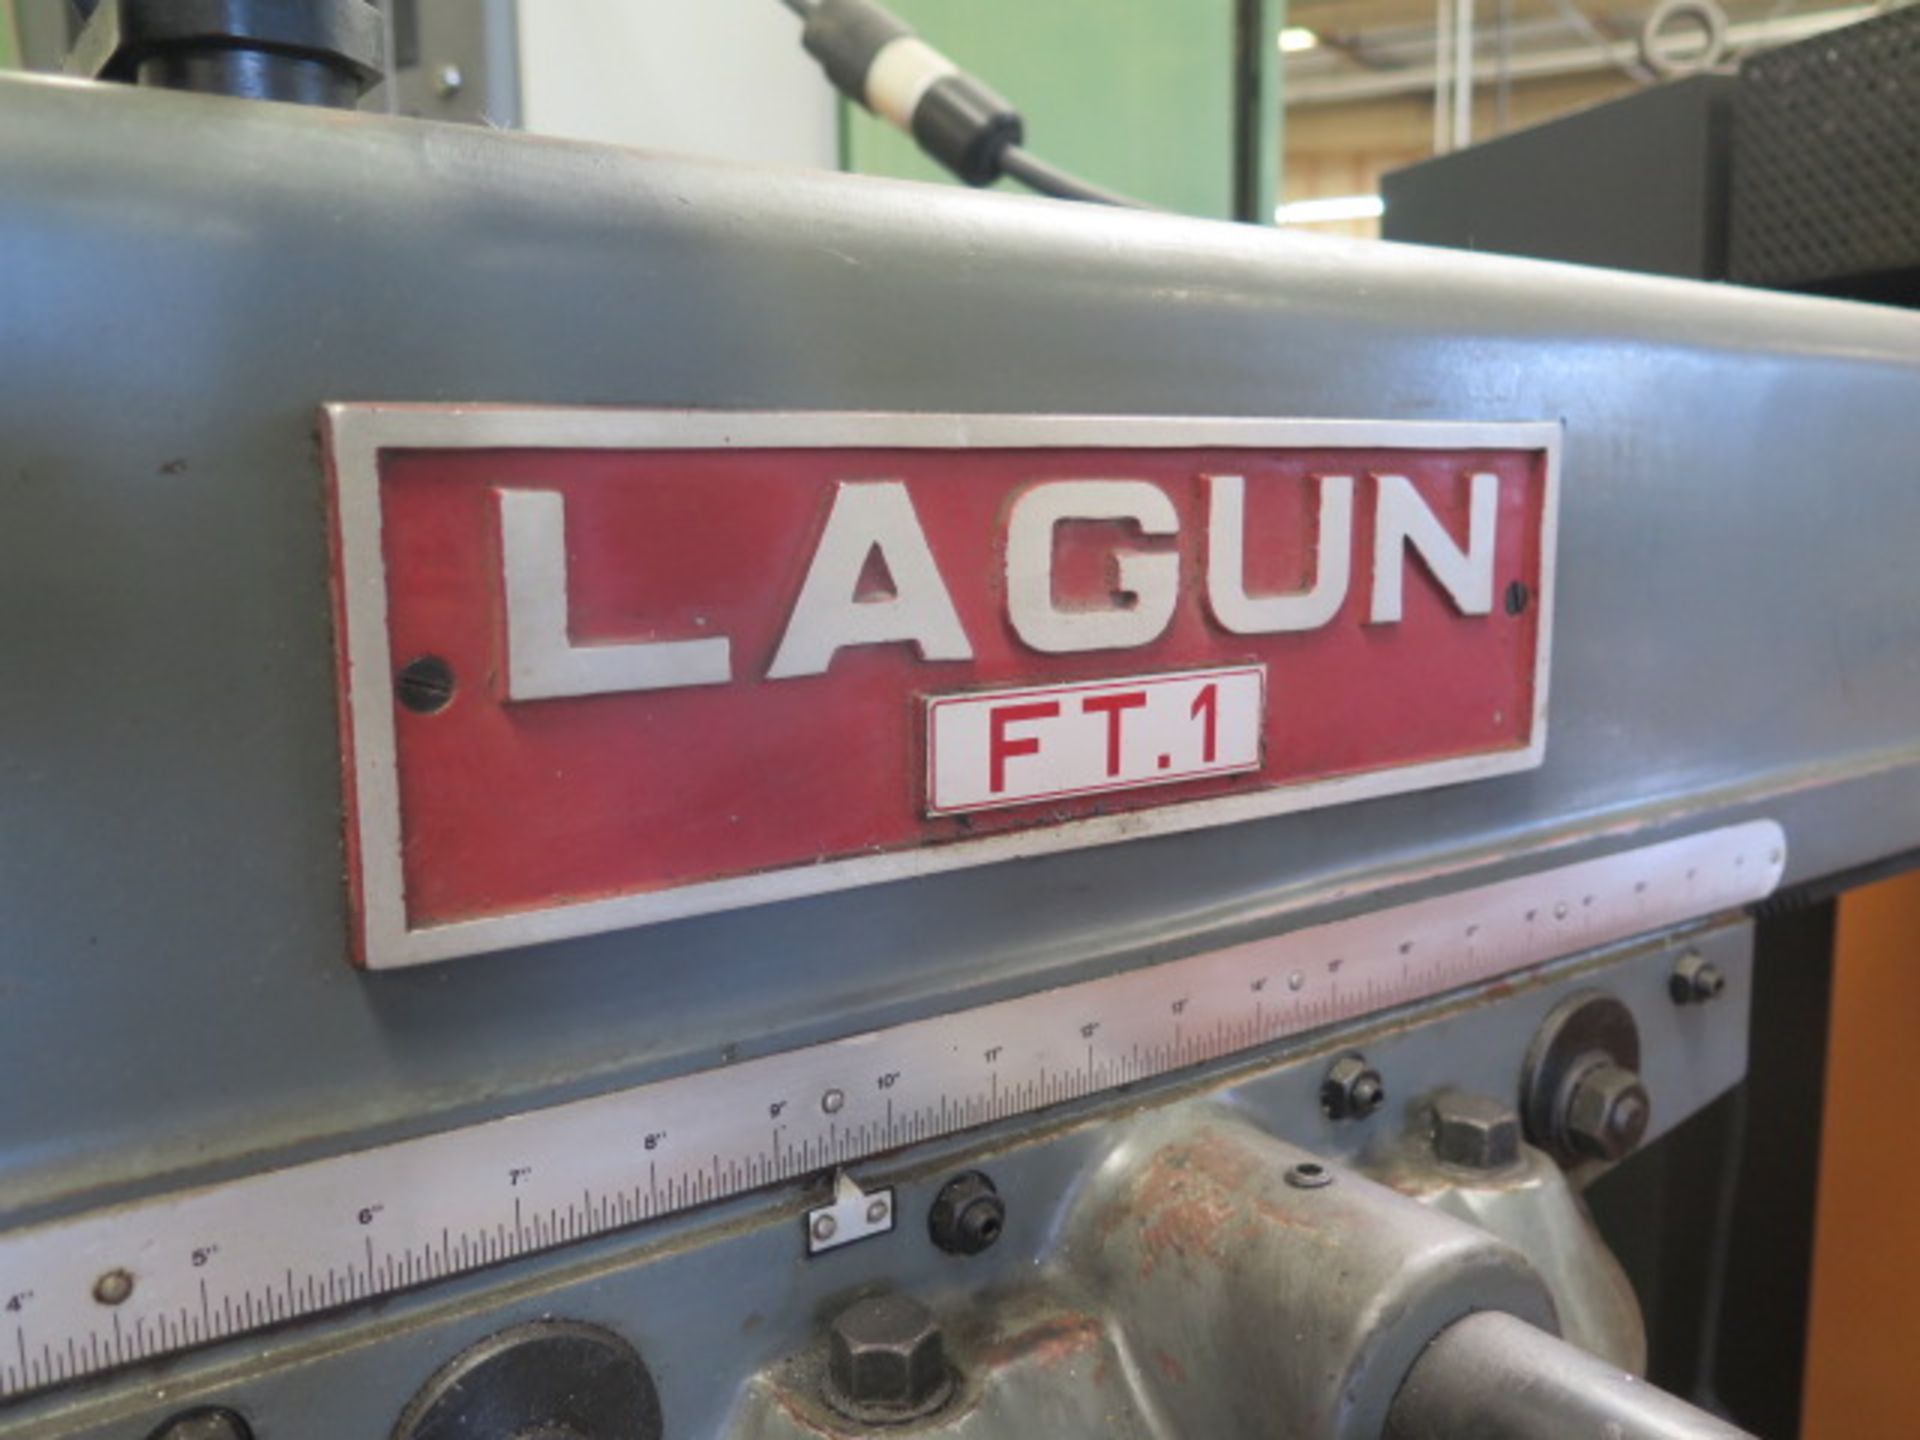 """Lagun FT-1 Vertical Mill w/ Mitutoyo DRO, 55-2940 RPM, 8-Speeds, Power Feed, 9"""" x 42"""" Table (SOLD - Image 6 of 14"""